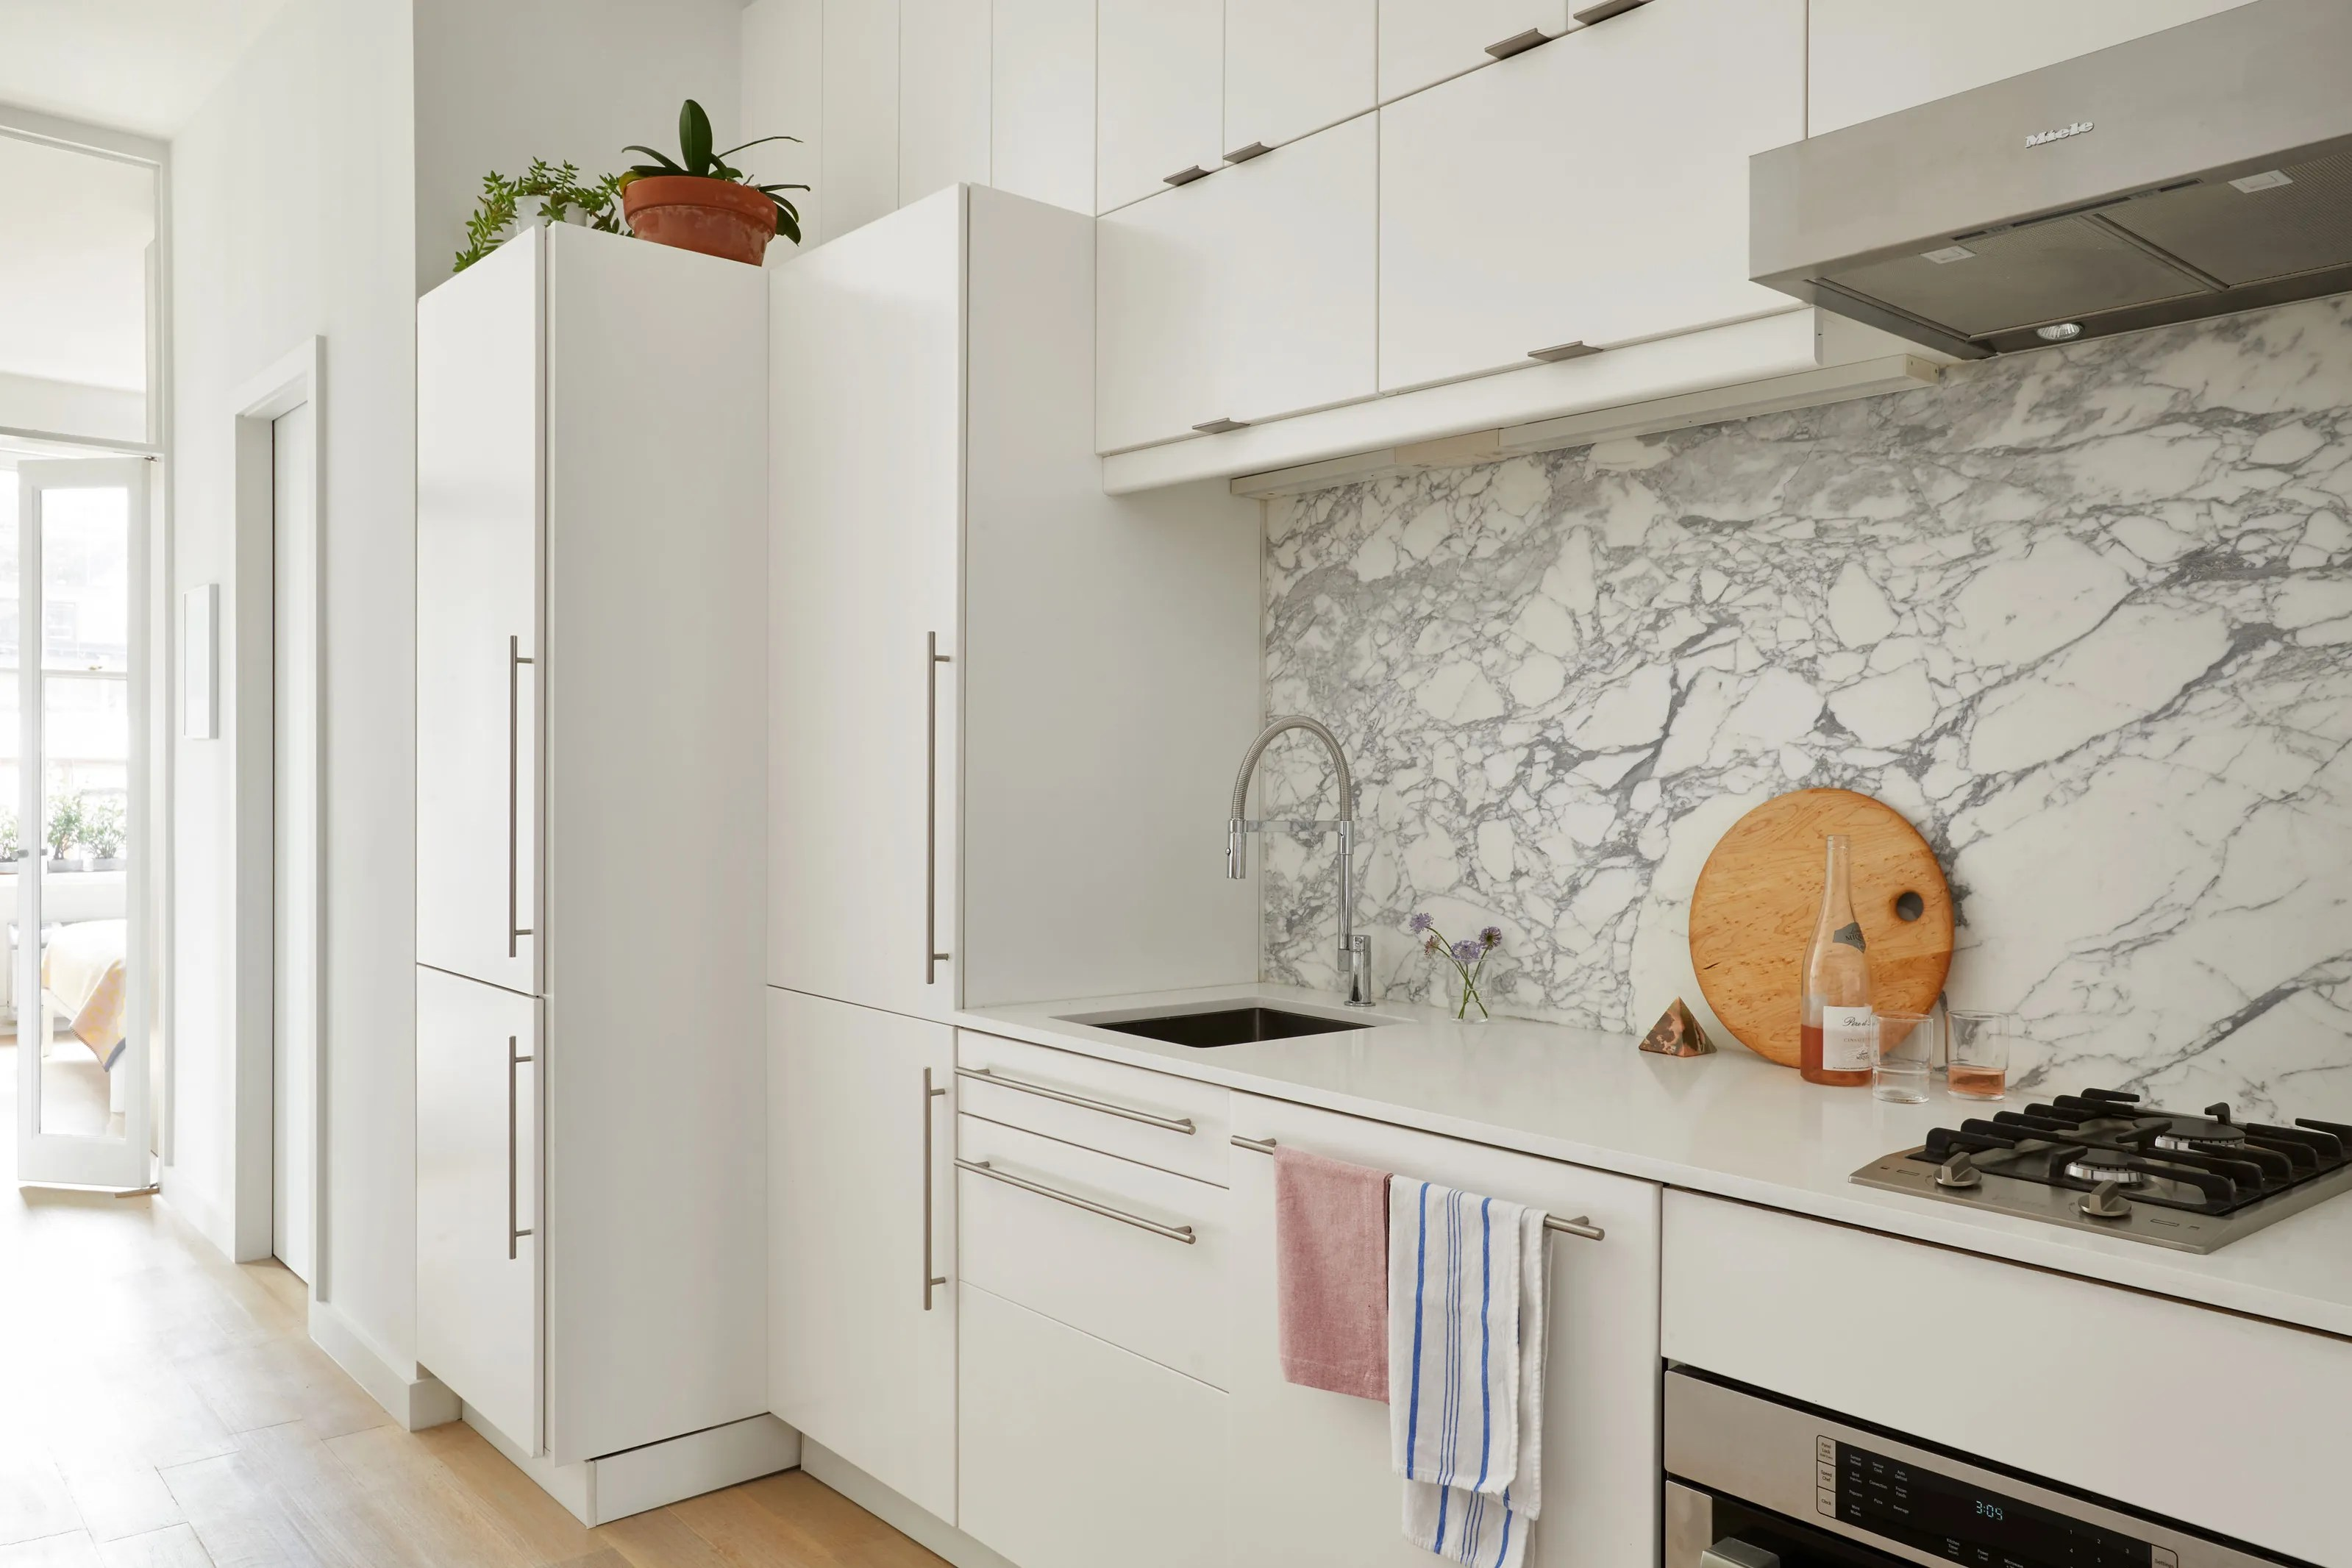 Ikea Kitchen Design Ikea Kitchen Hacks So Your Kitchen Doesn T Look Like Everyone